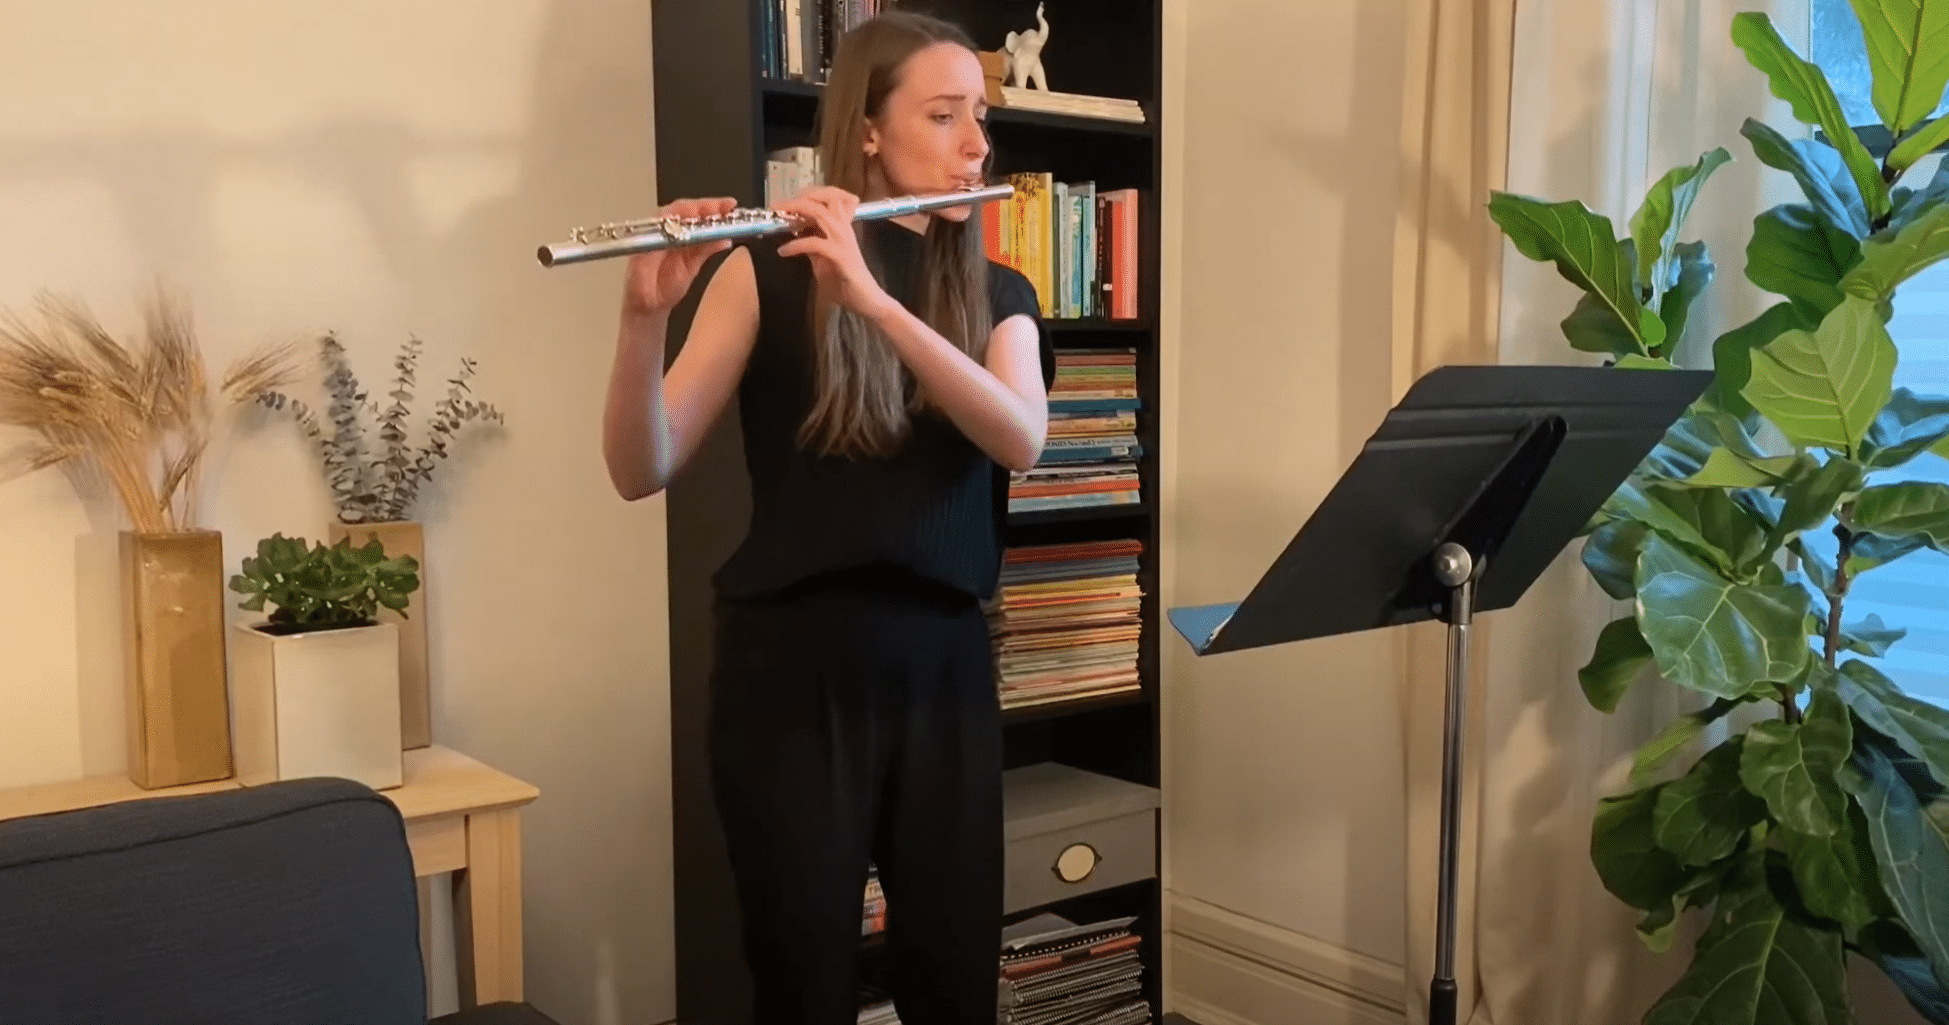 Kayla playing flute in living room